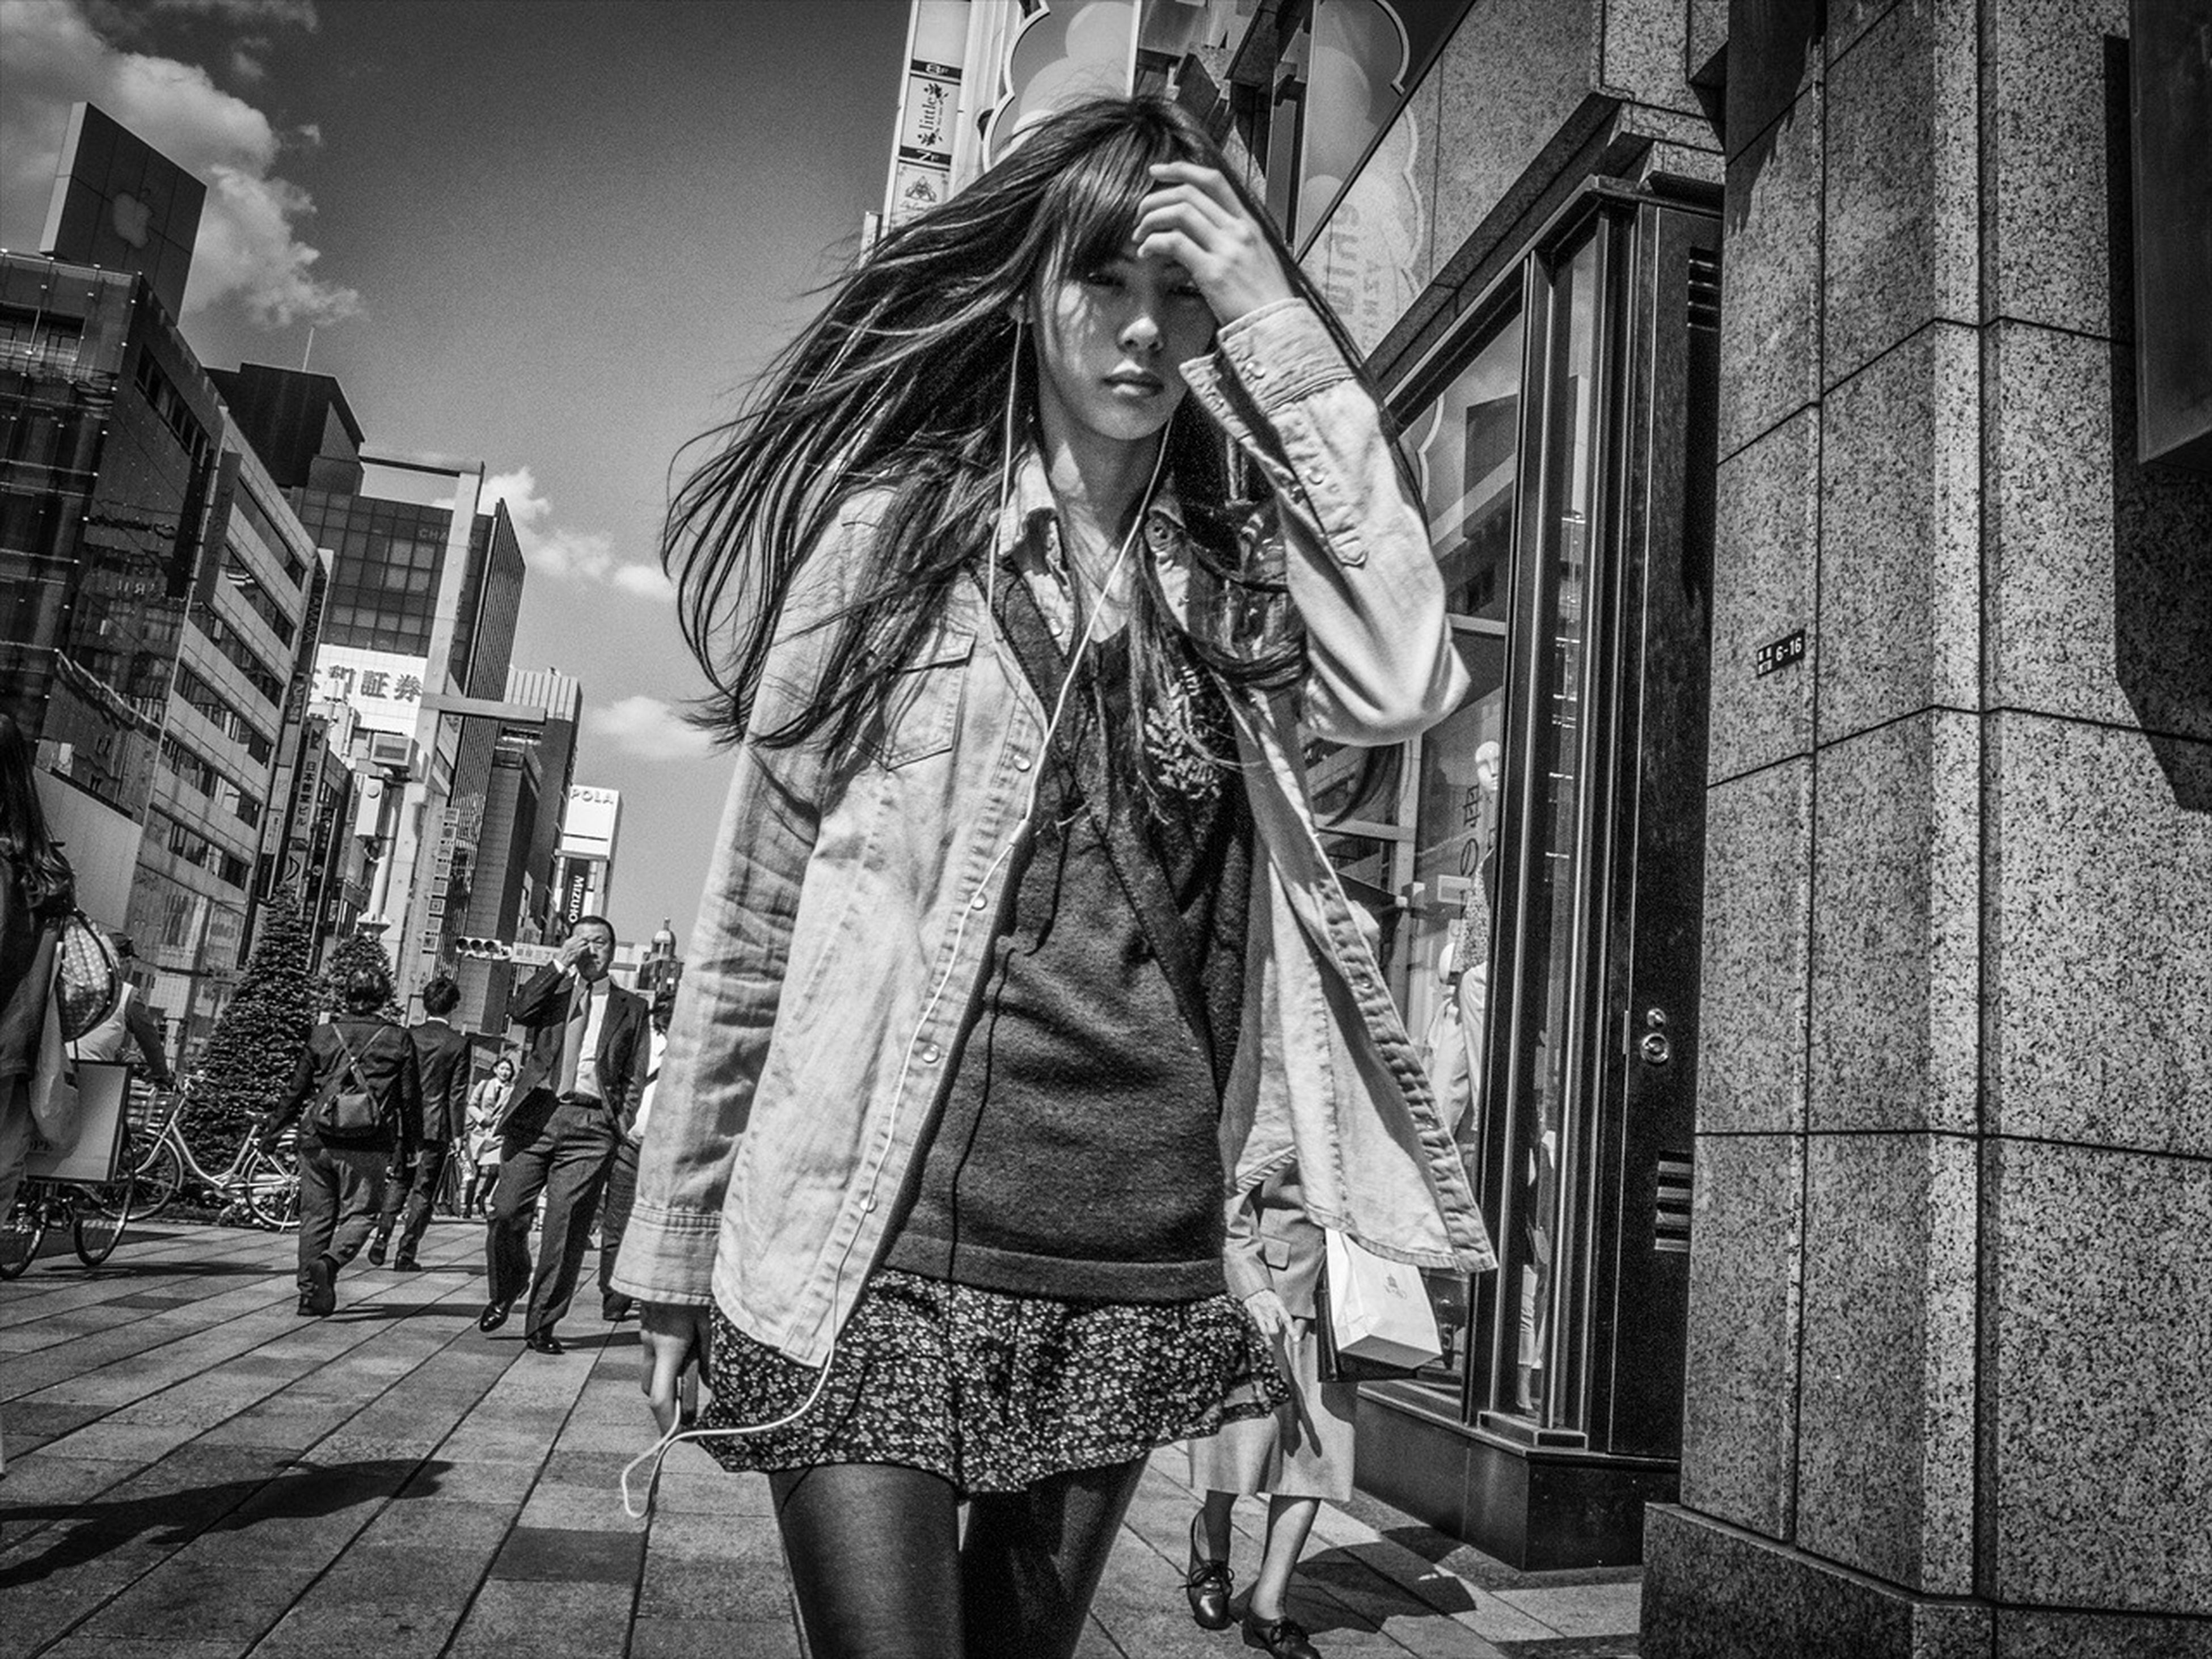 building exterior, architecture, built structure, lifestyles, casual clothing, standing, leisure activity, young adult, full length, city, young women, street, front view, building, person, walking, three quarter length